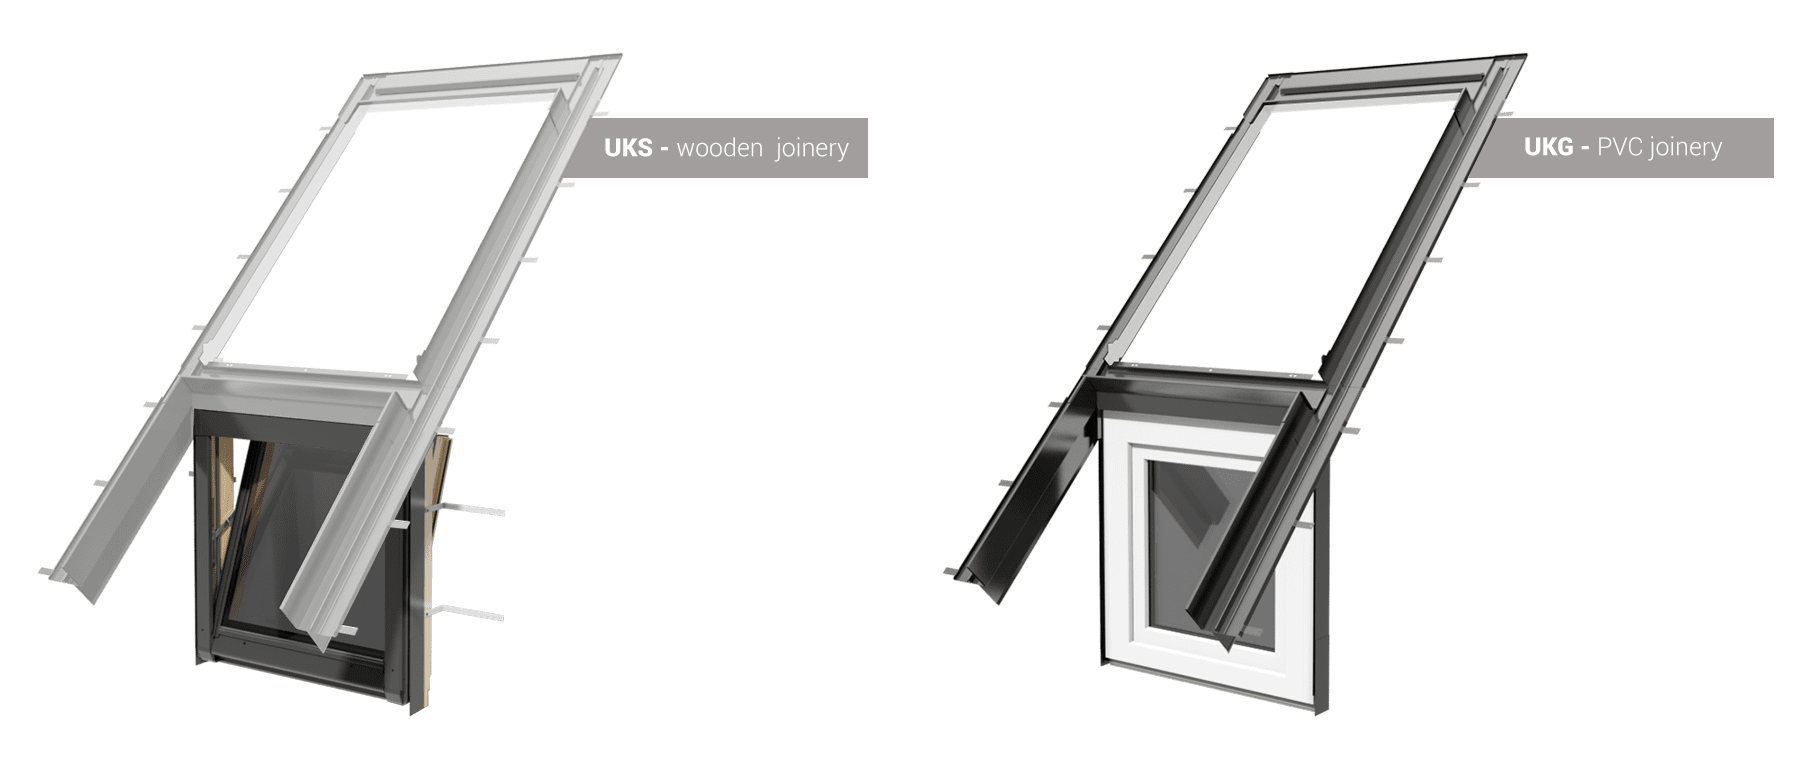 uksiukggeng UKS, UKG - for combining roof windows with l-shaped windows